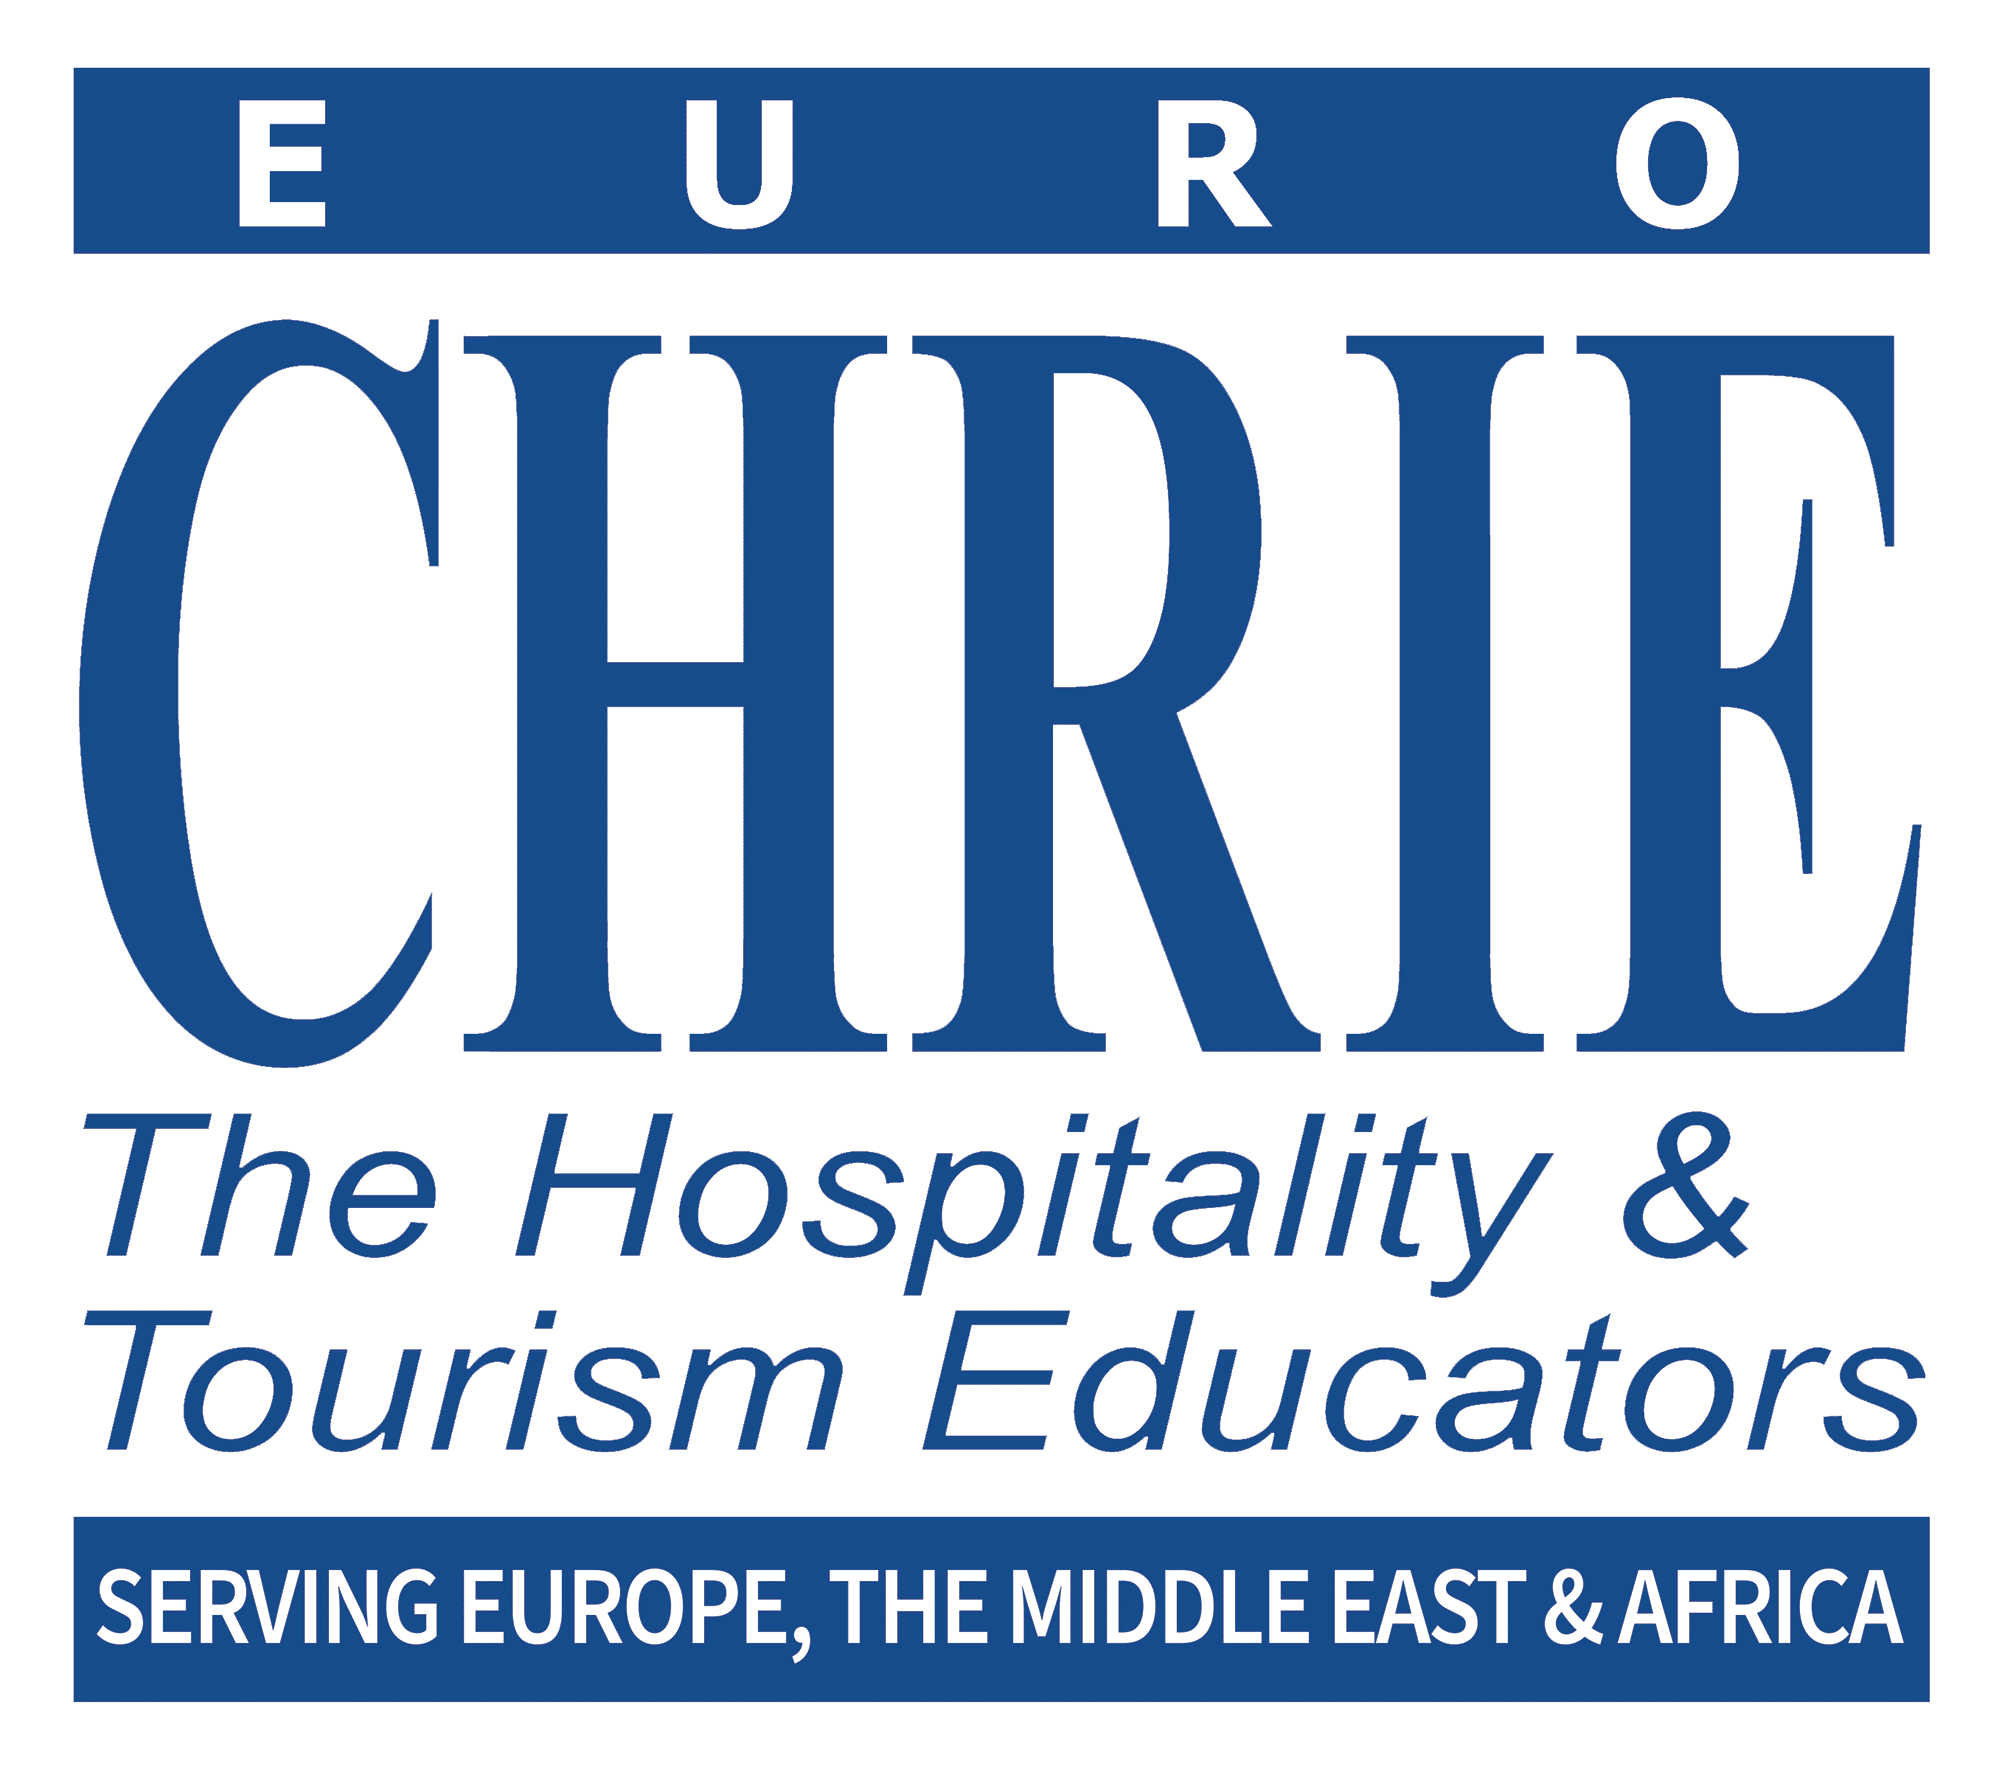 The Home of EuroCHRIE - The Hospitality & Tourism Educators 103